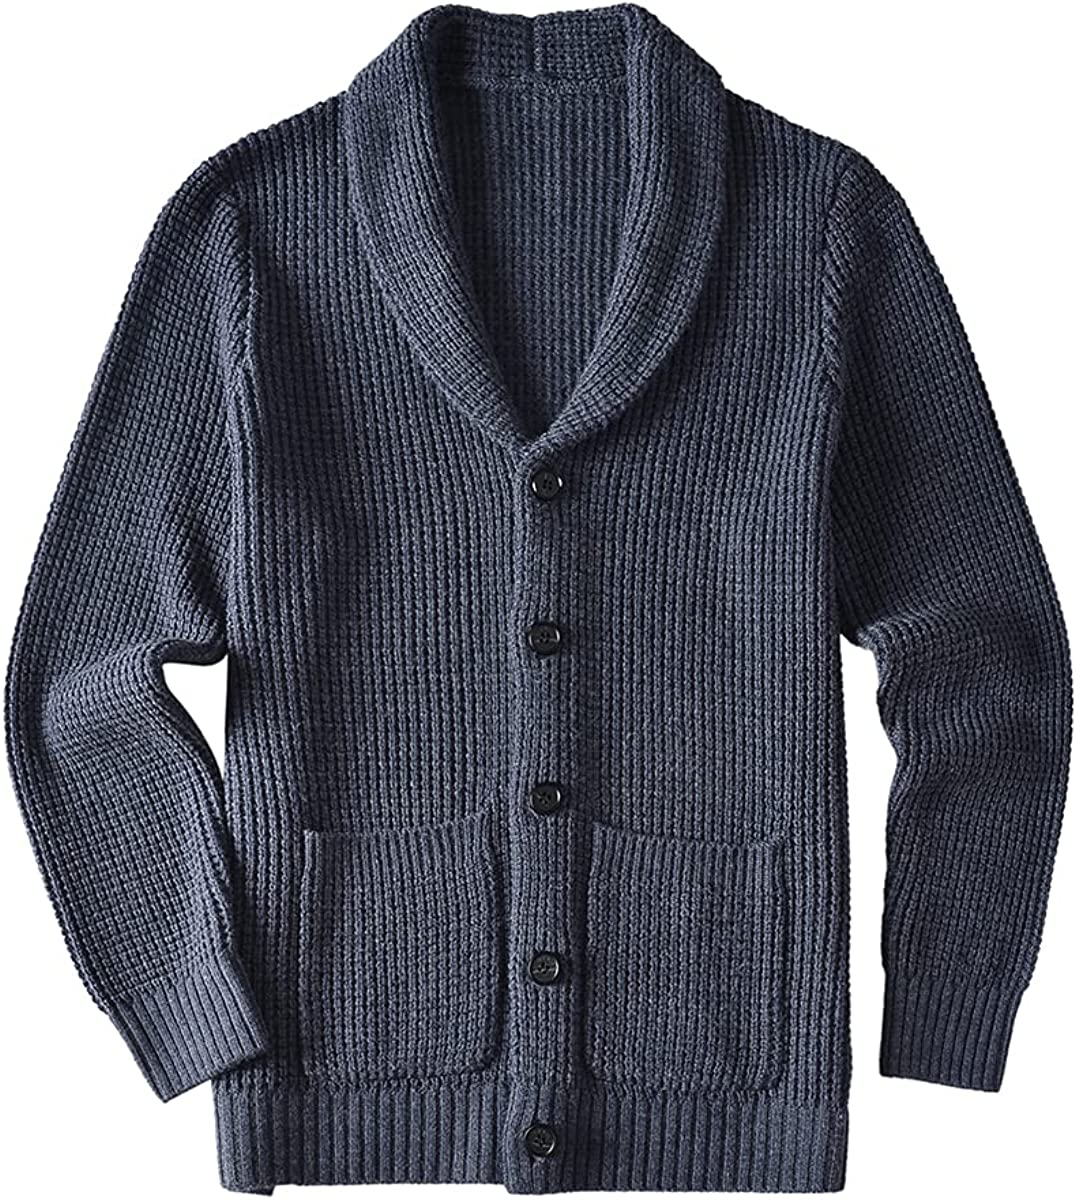 ZHILI Men's Casual Slim Thick Knitted Shawl Collar Cardigan Sweaters Pockets